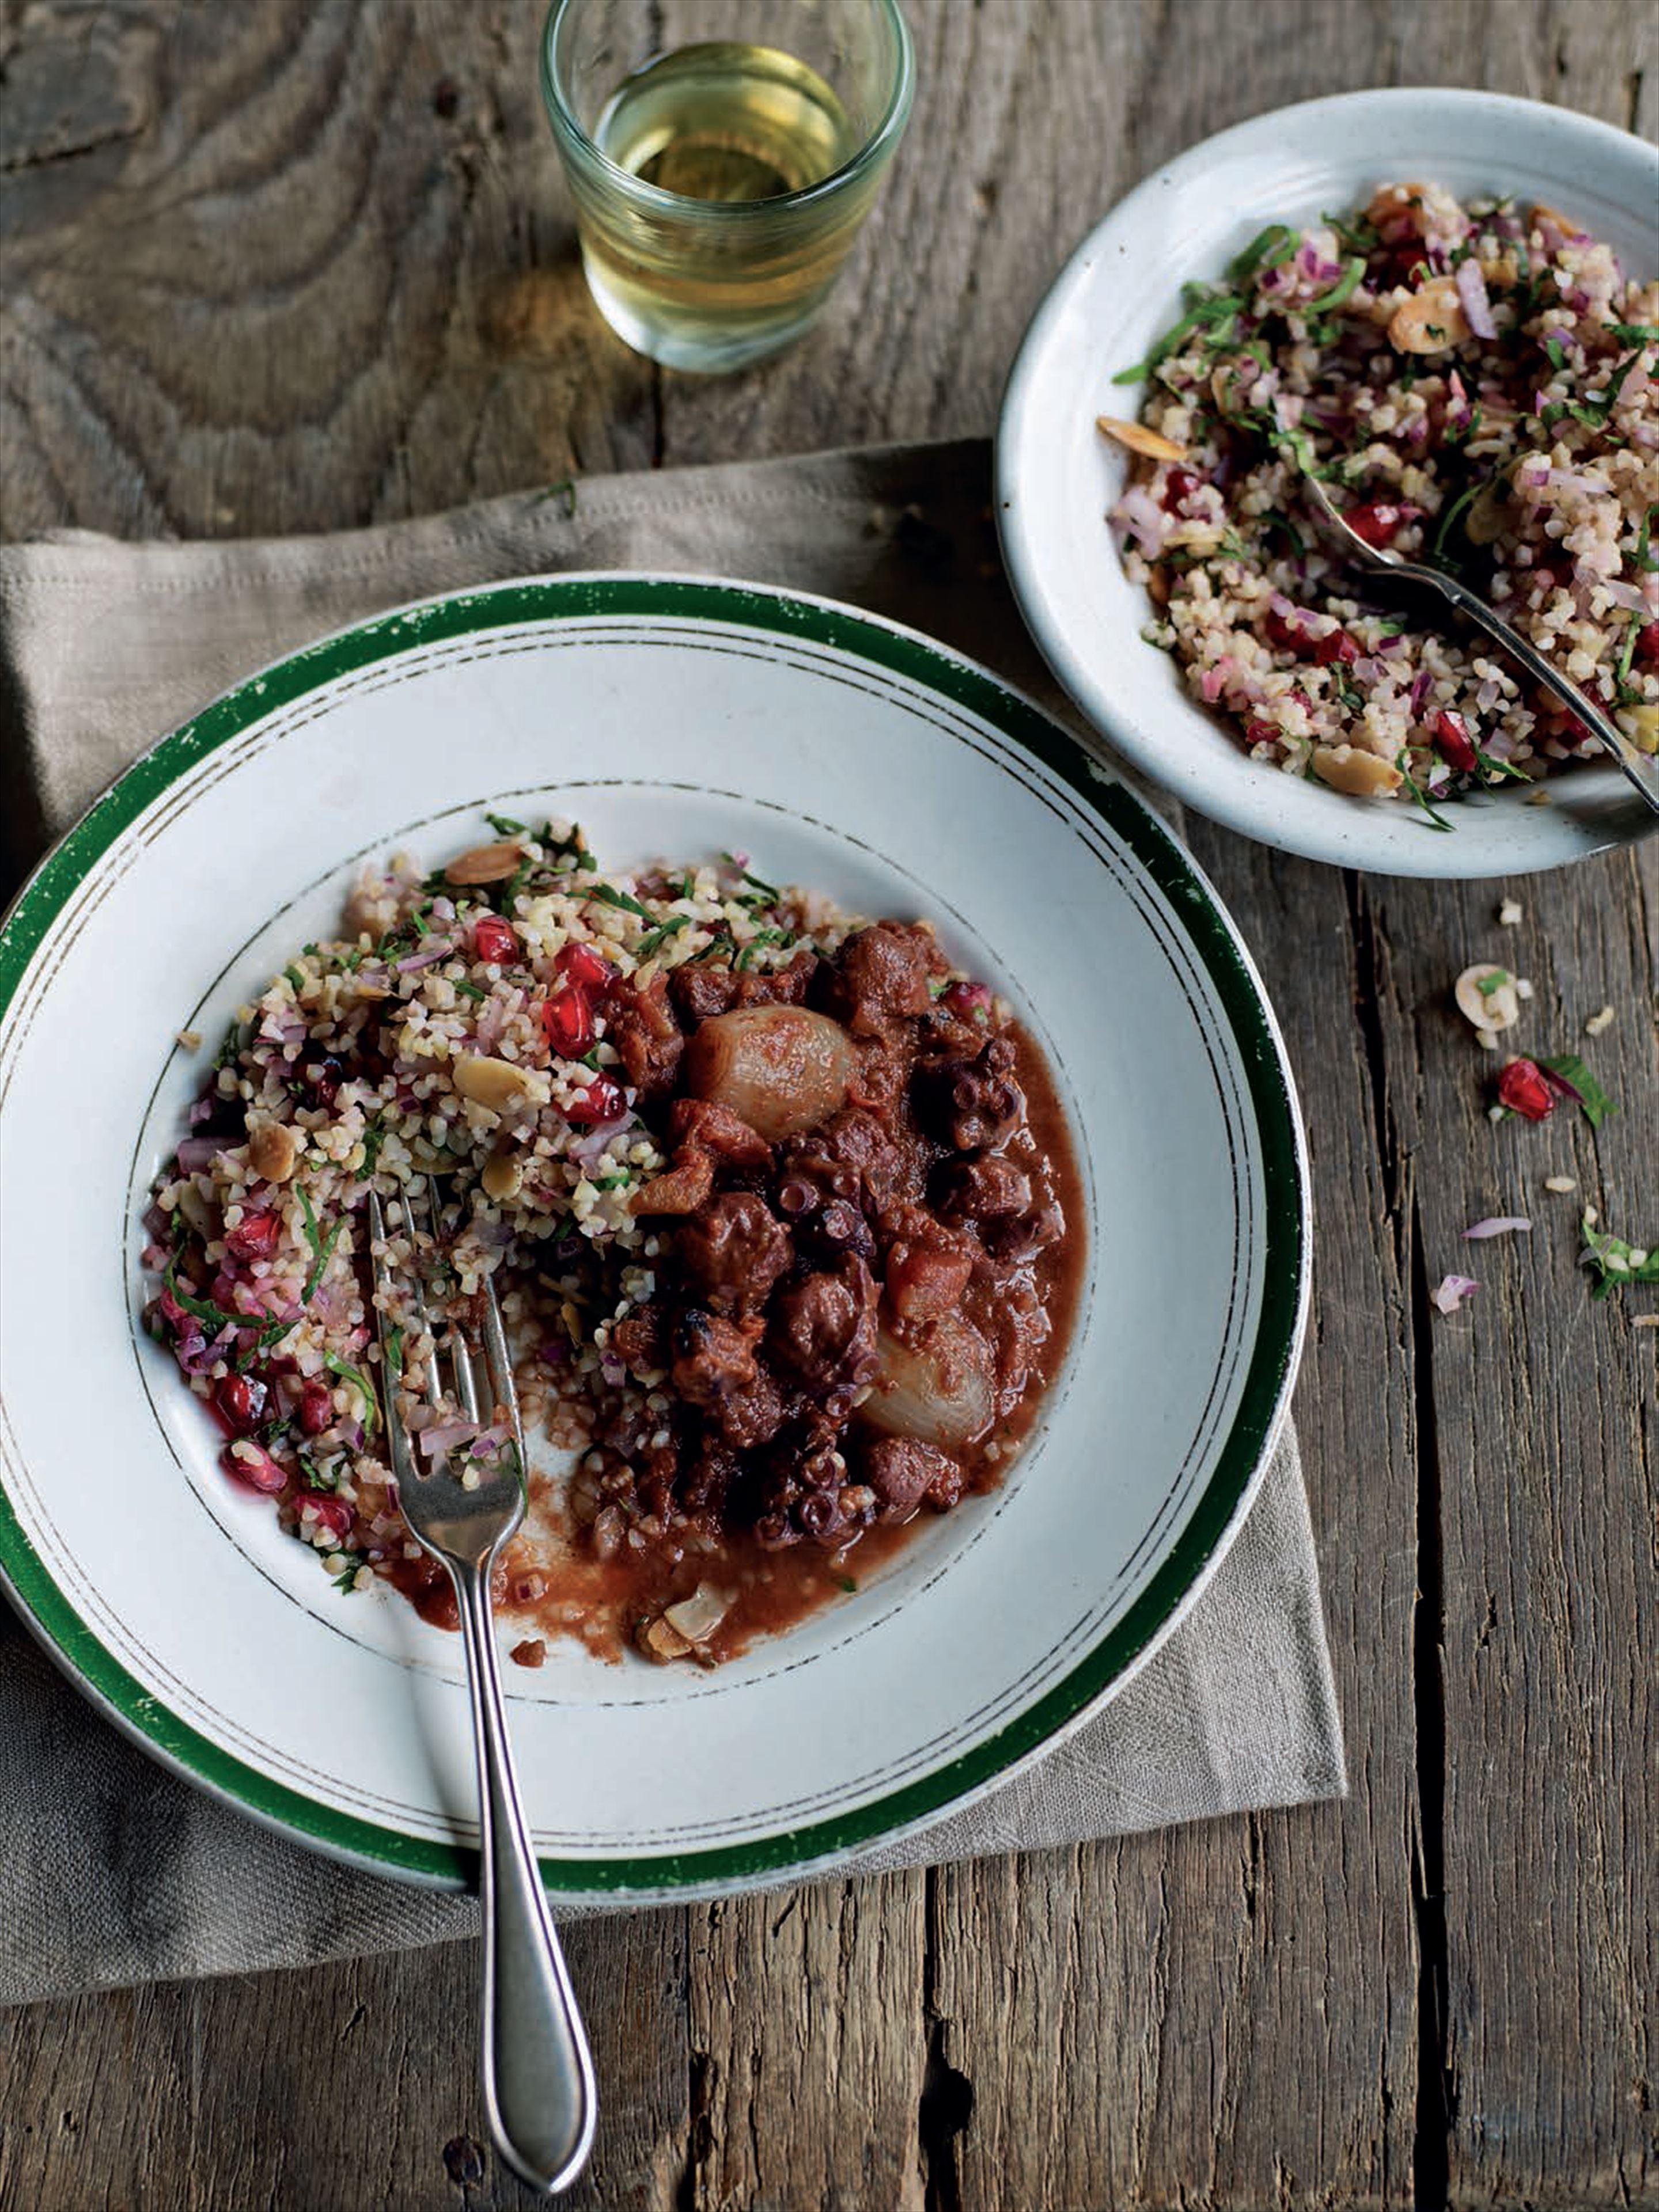 Braised octopus with herb tabbouleh